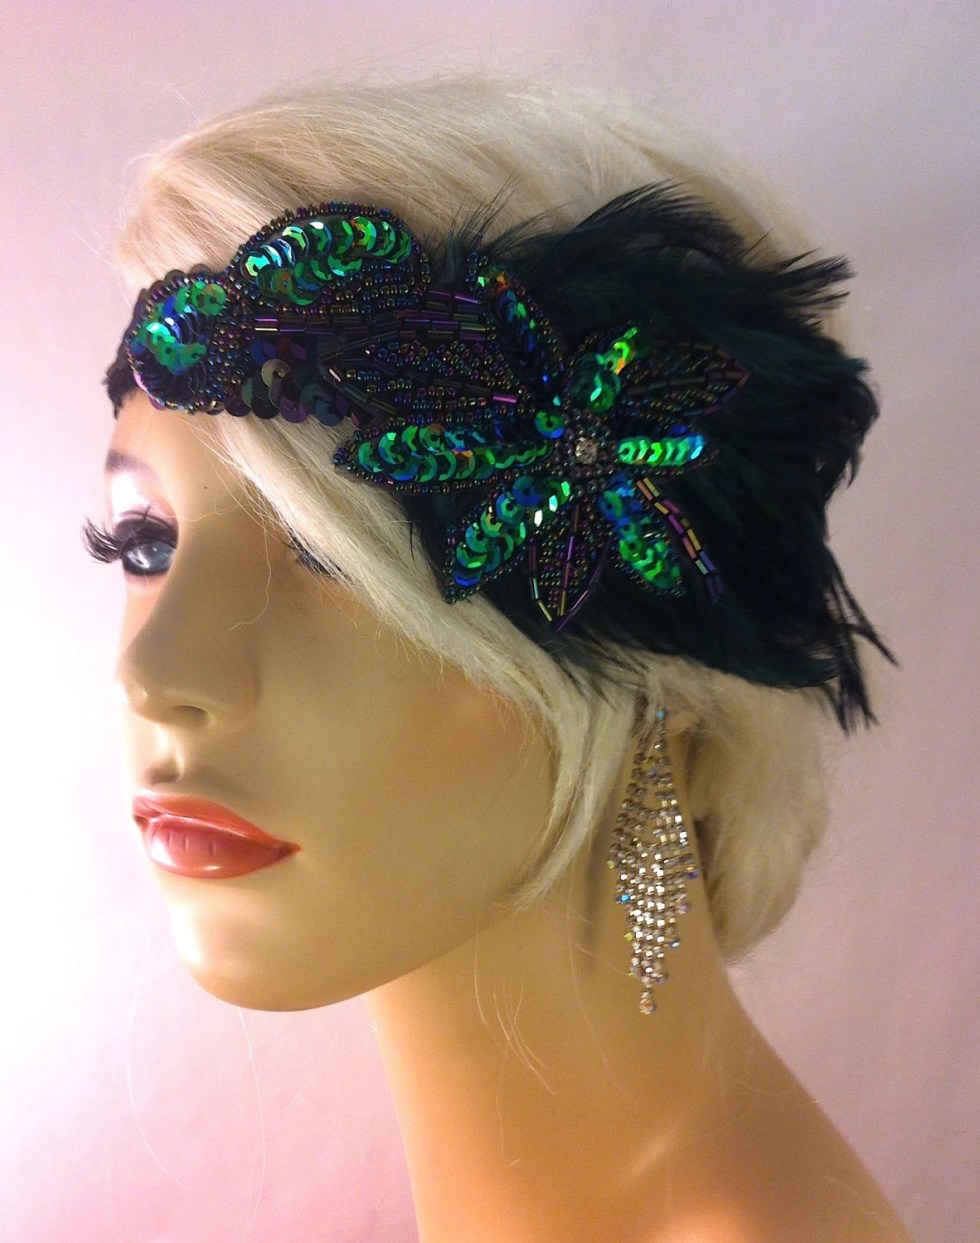 Great Gatsby Headband, Flapper Headband, Downton Abbey, Headband, 1920s Head Piece, Art Deco Headband, Dark Emerald and Peacock Colors